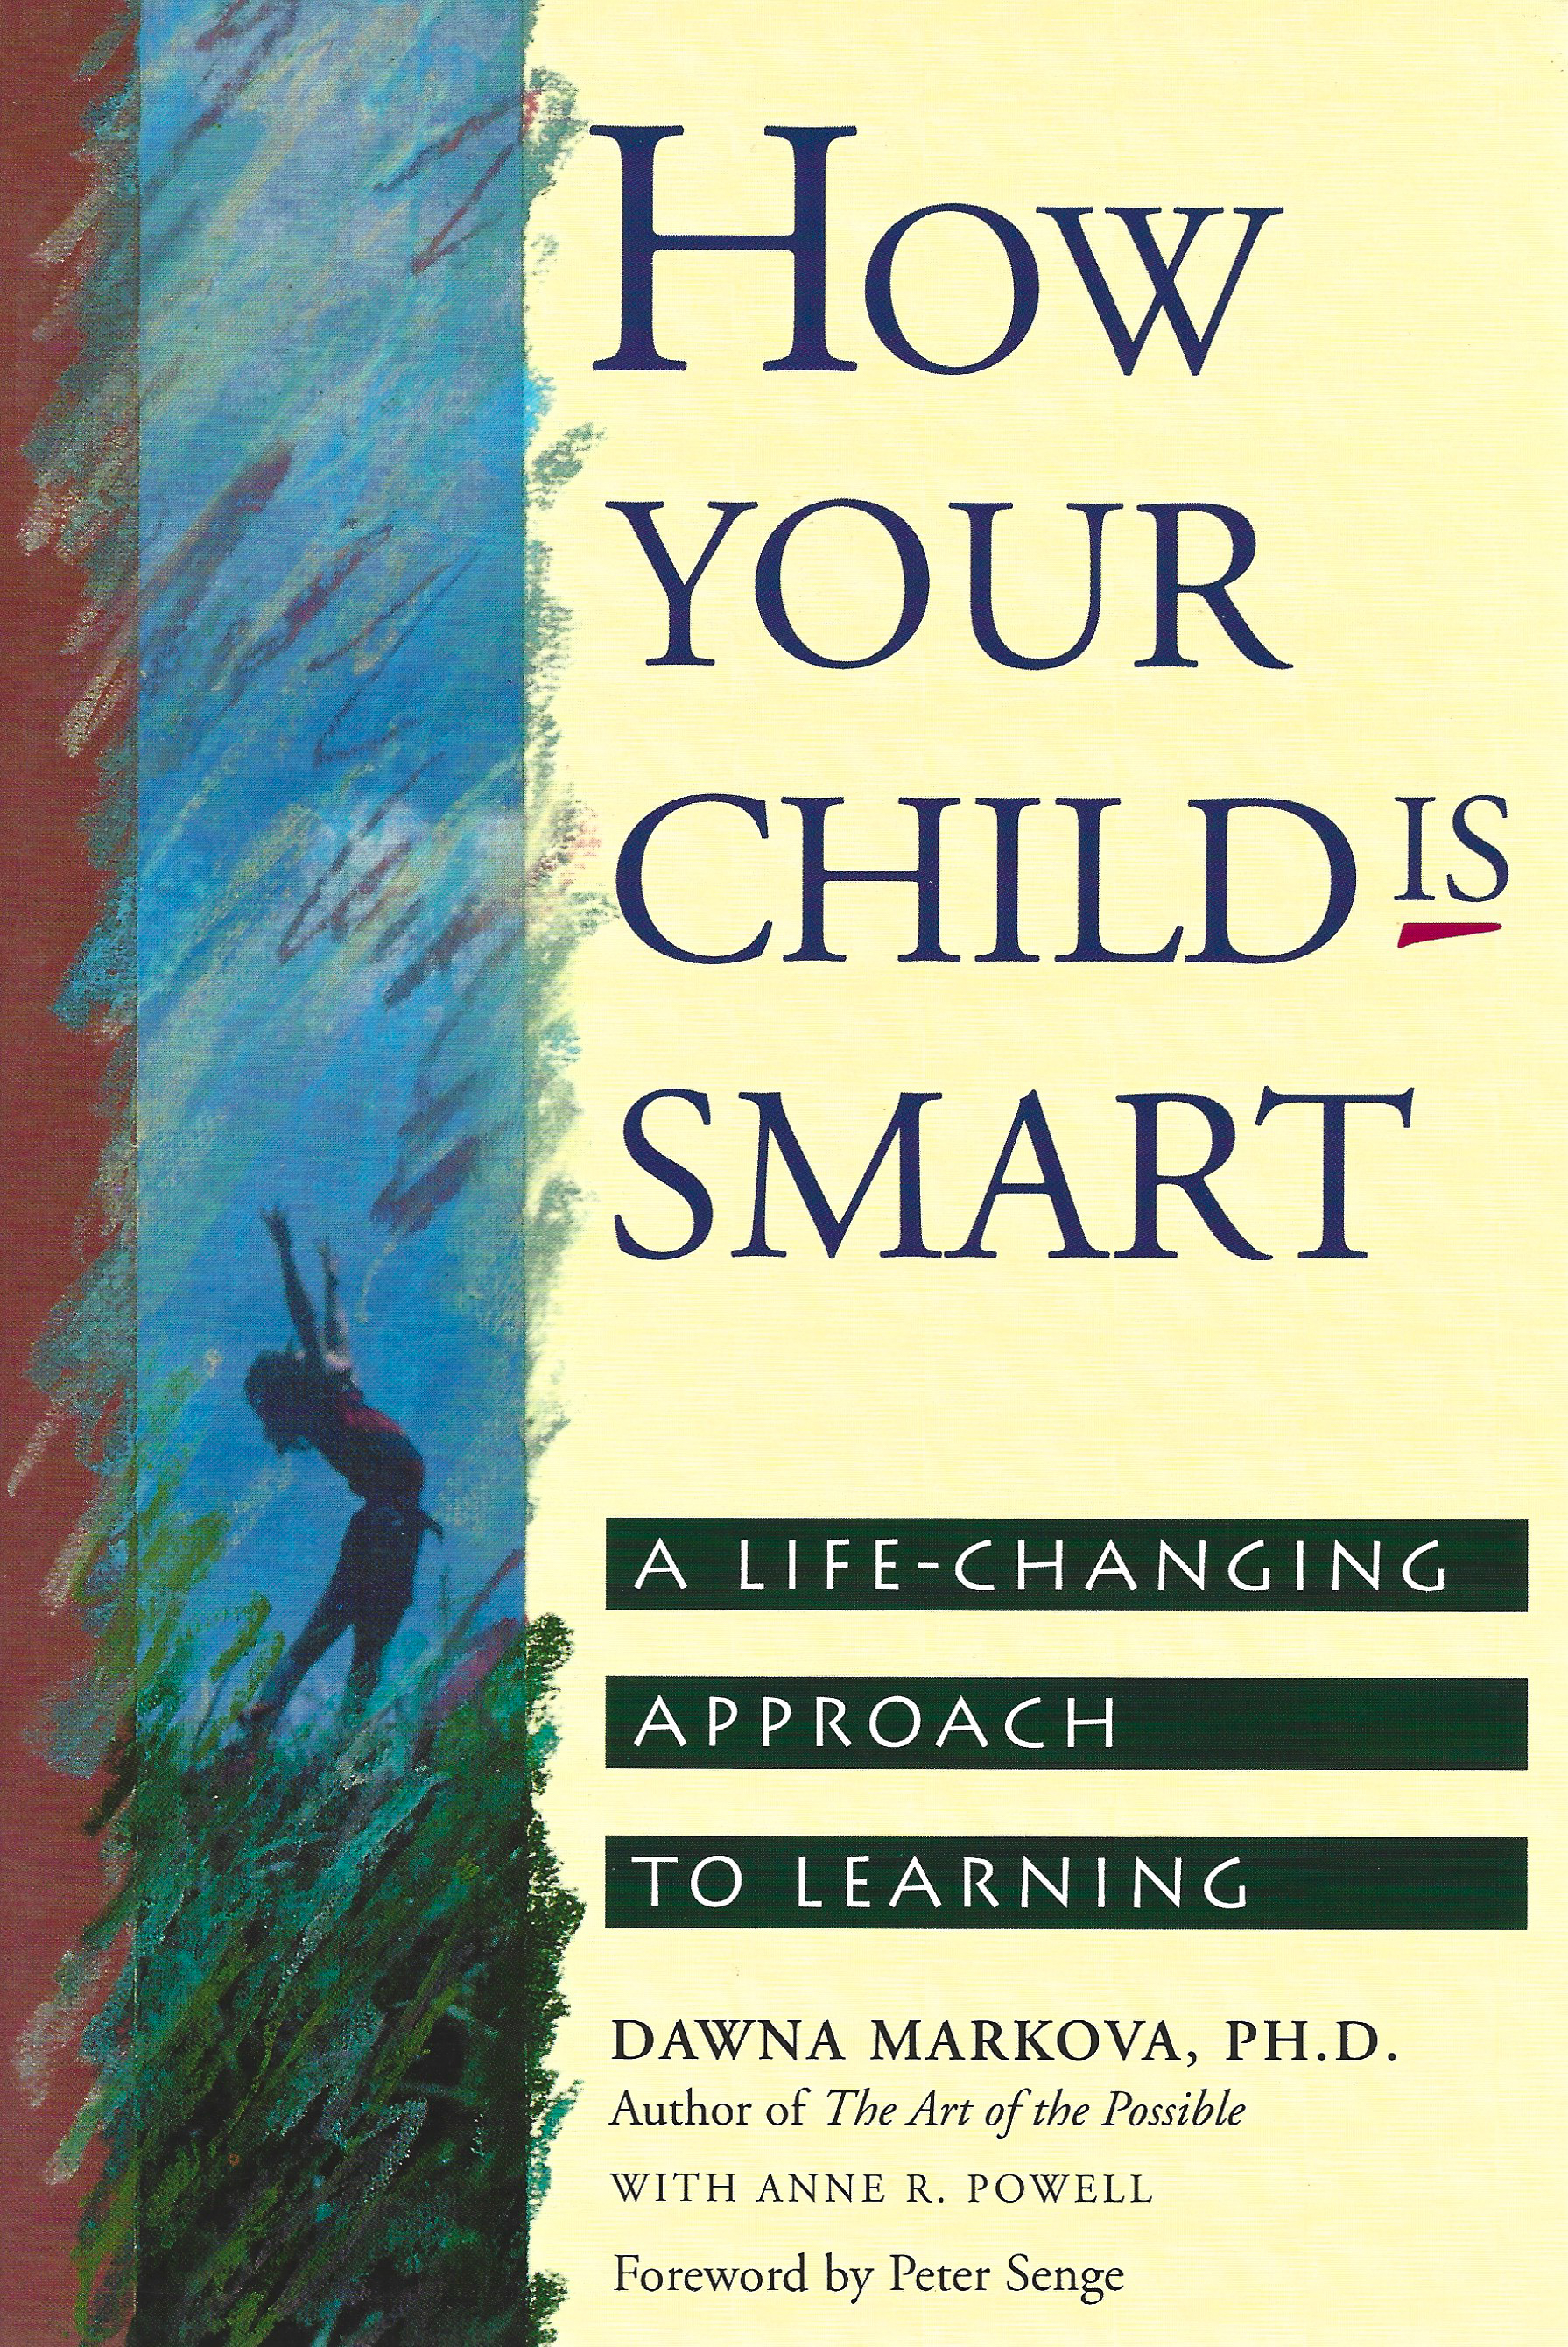 How Your Child Is Smart.jpg